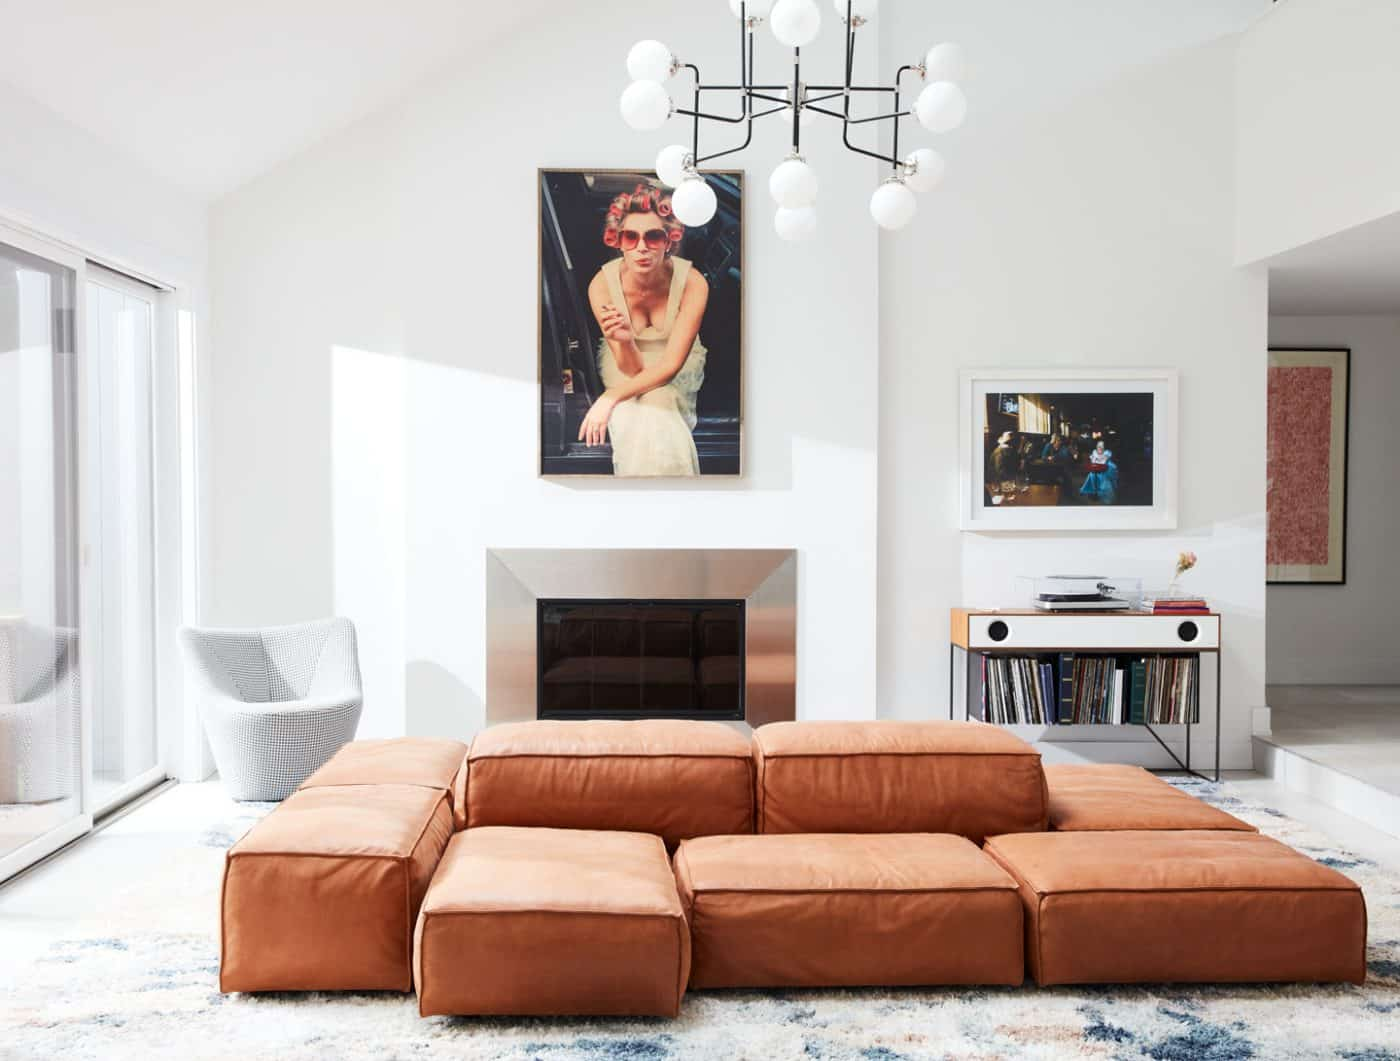 The living room of a house in Oyster Bay, on Long Island, with interiors by Danielle Fennoy of Revamp Interior Design